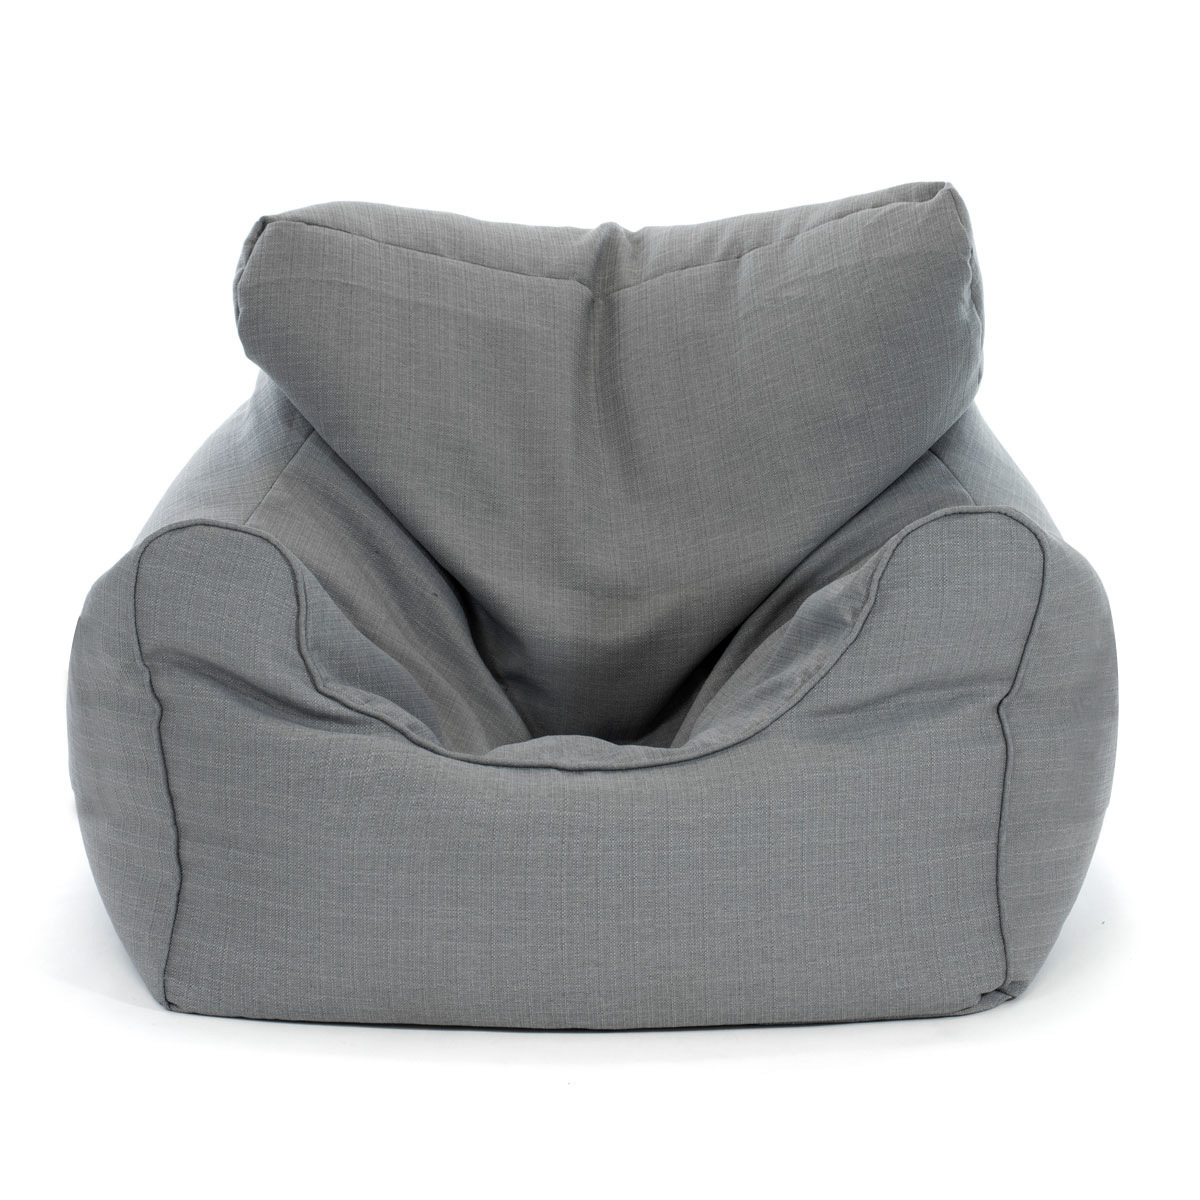 Beanbag Chairs Extra Large Grey Bean Bag Chair Kmart